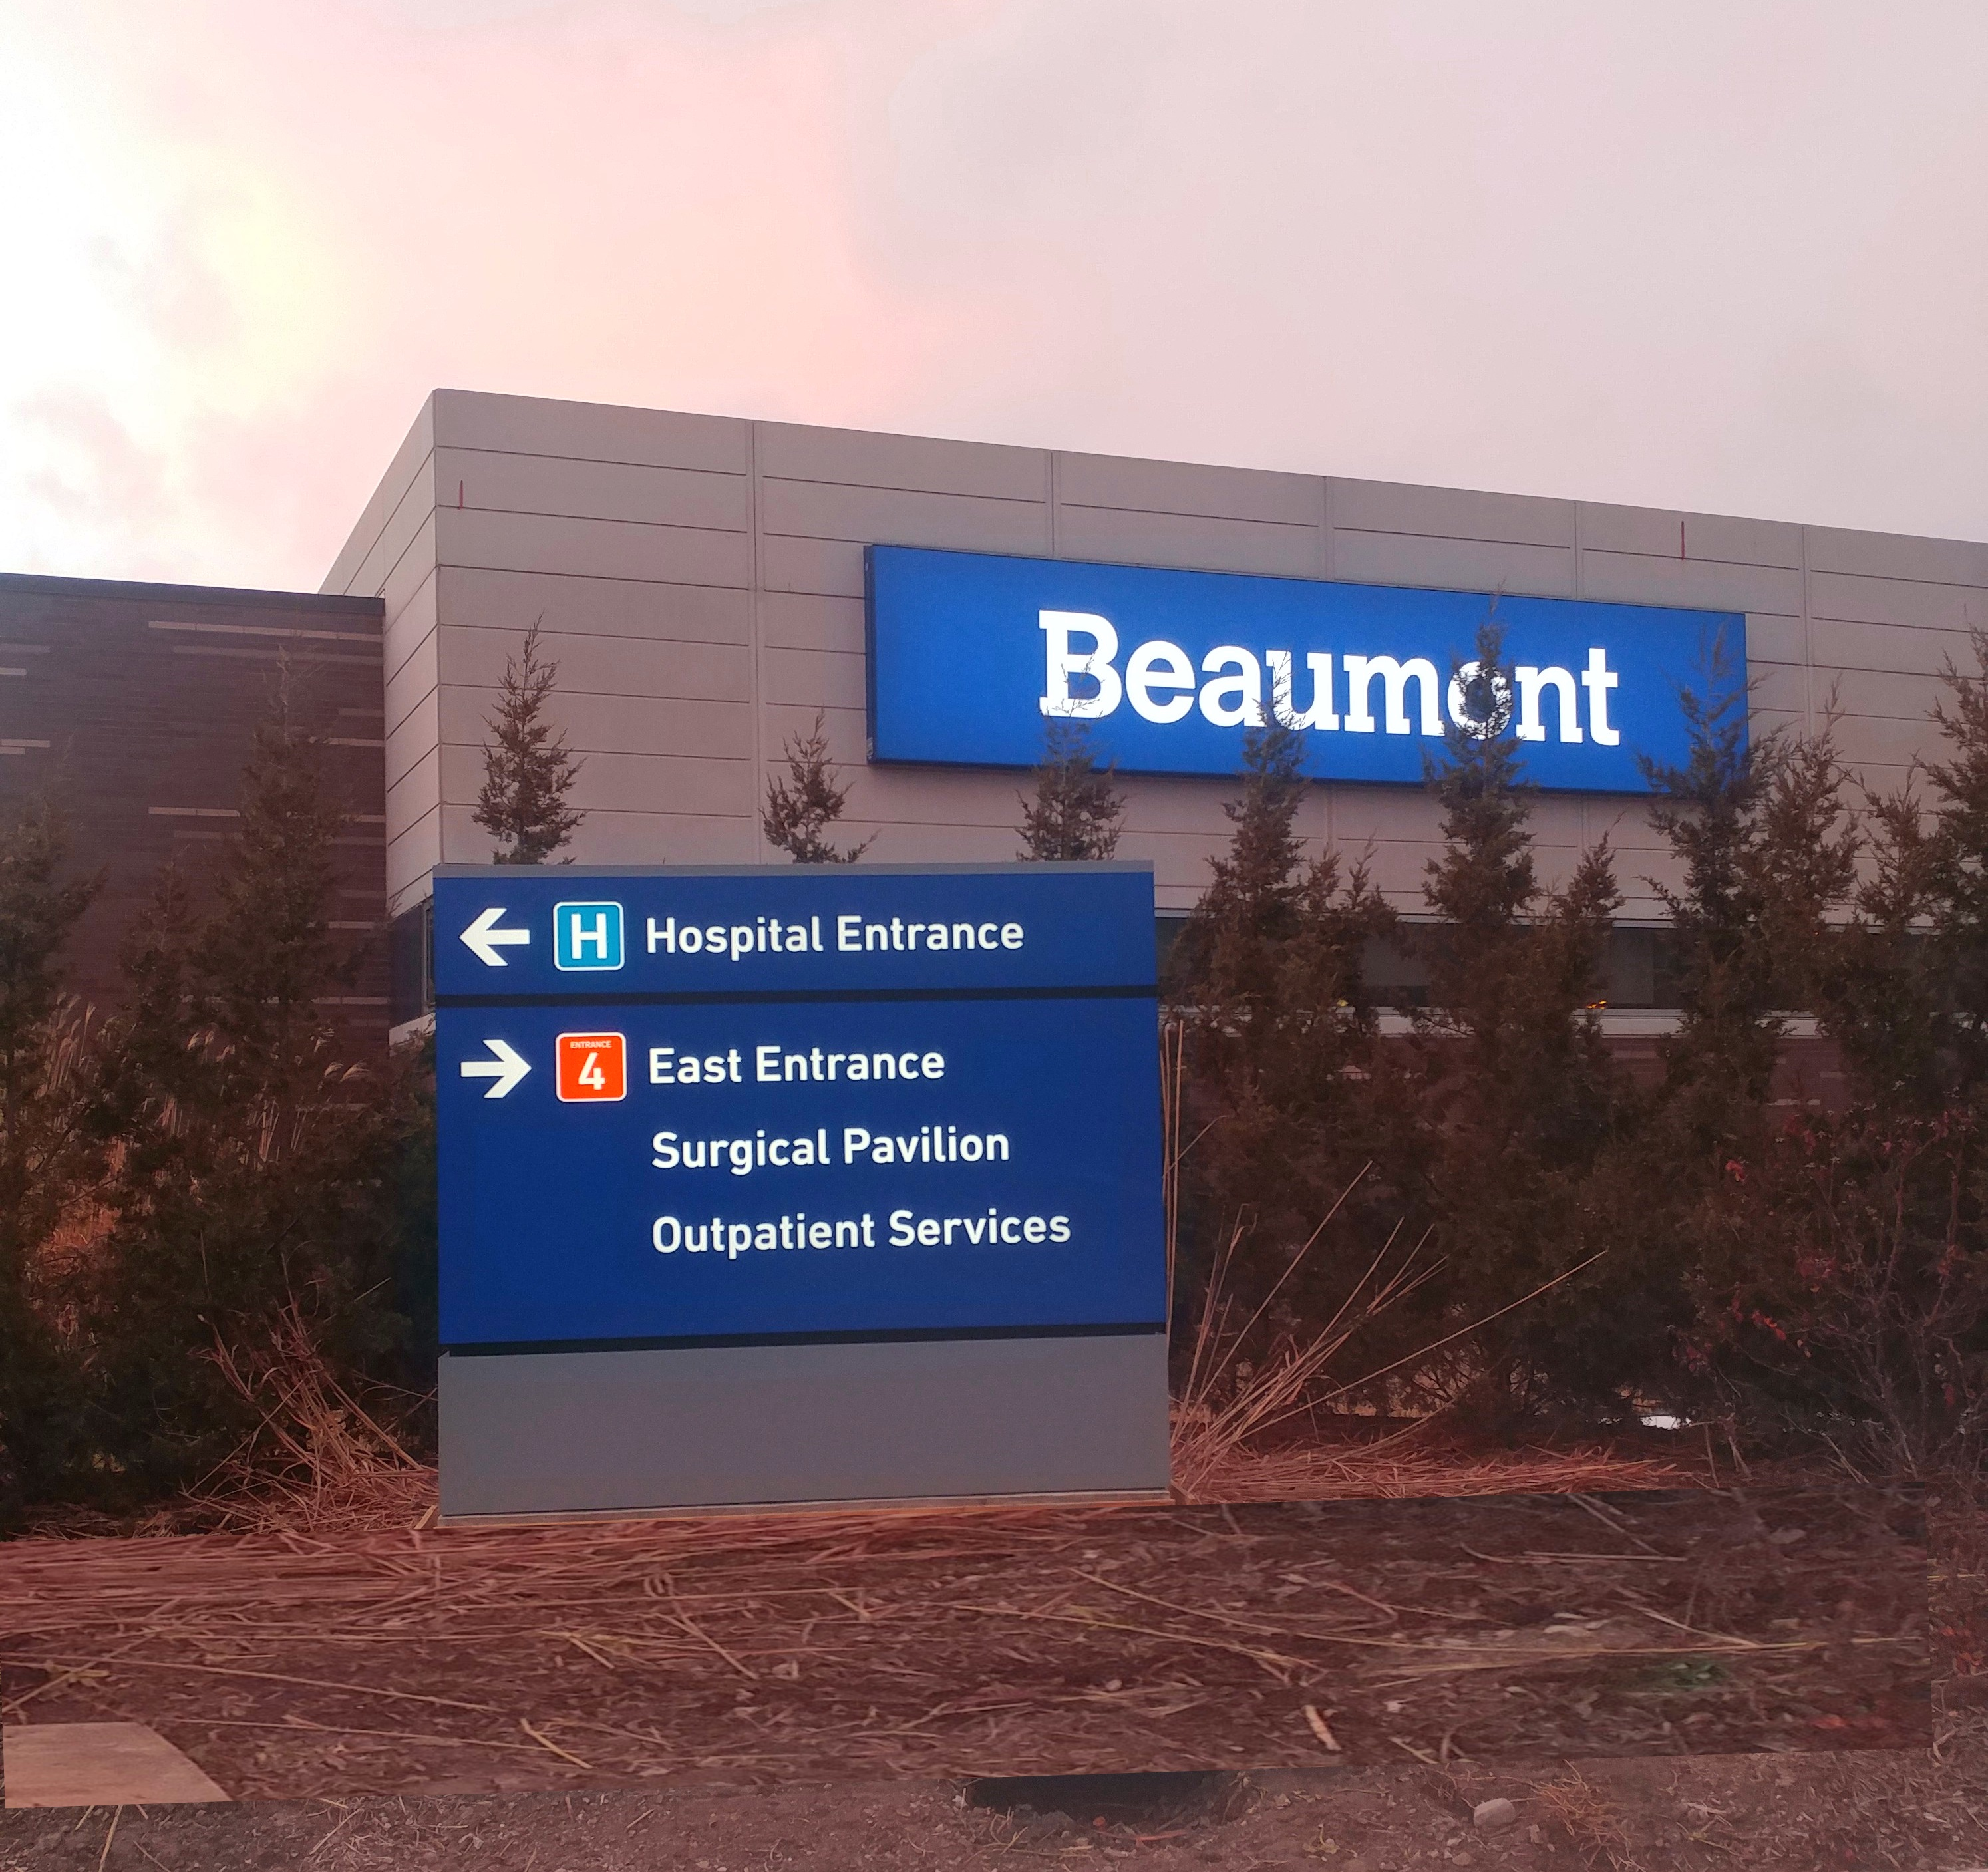 Beaumont Hospital - Taylor